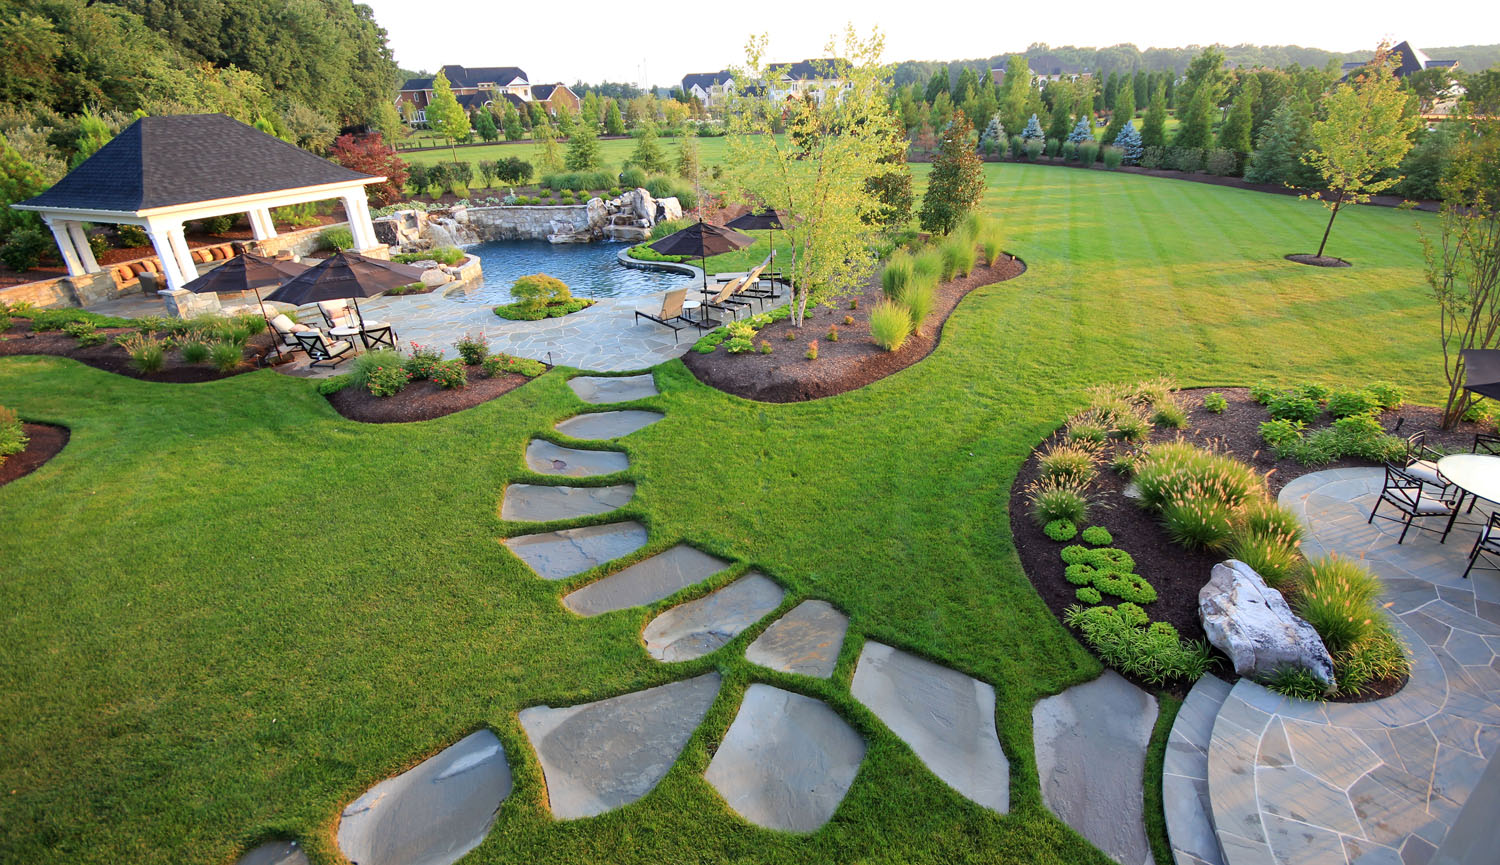 Great falls virginia landscape architecture the role of Definition landscape and design